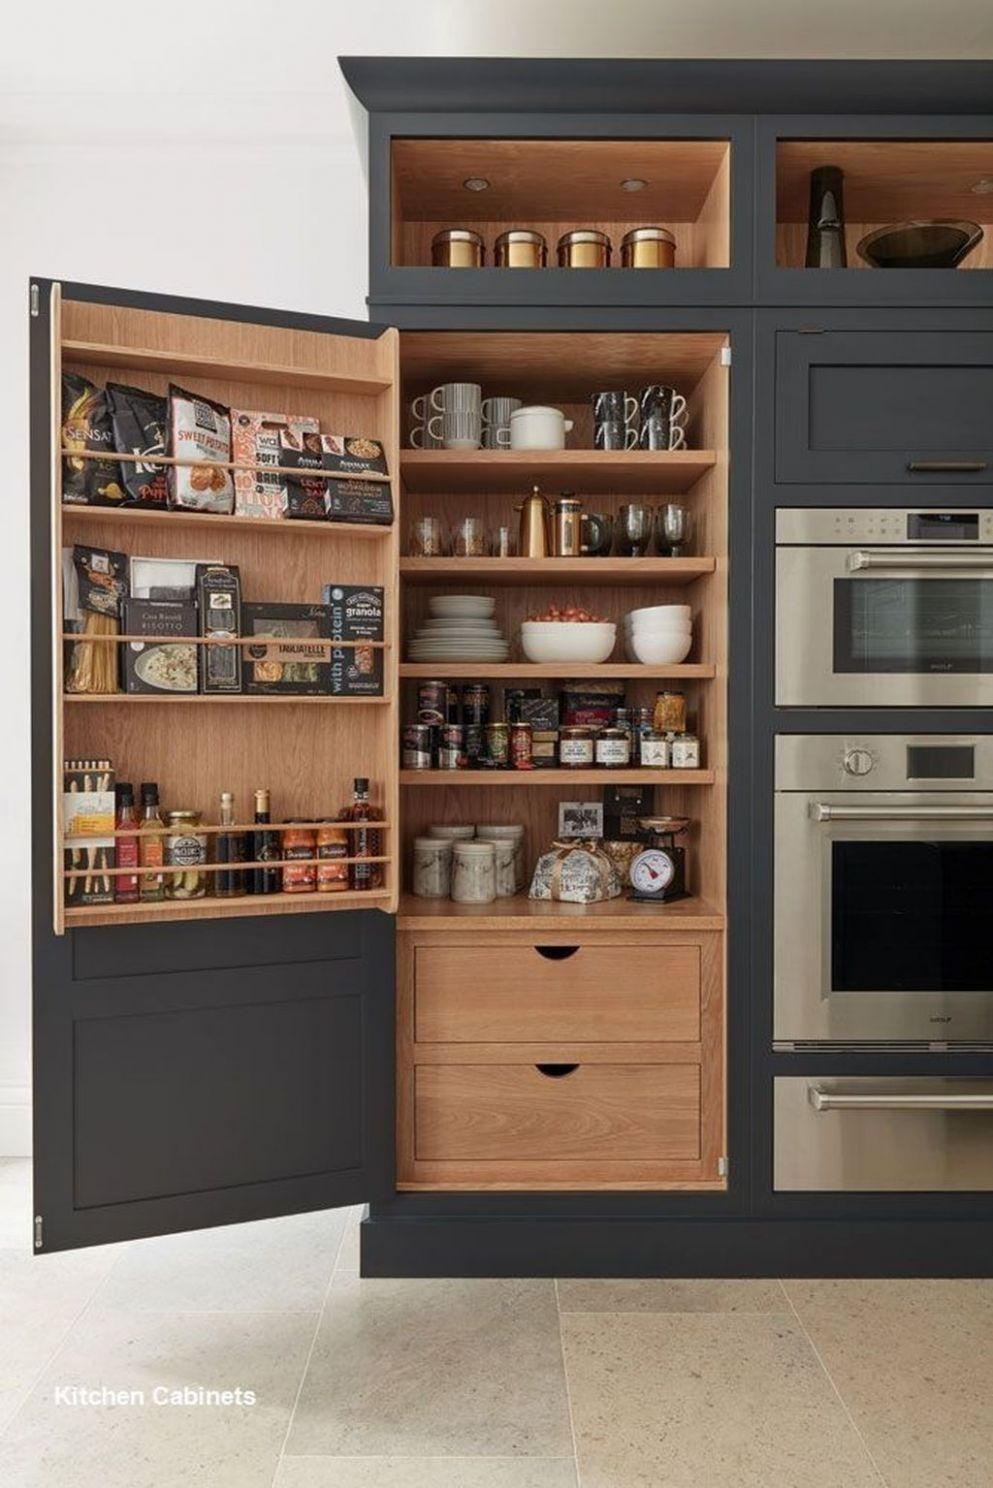 10+ Unordinary Kitchen Storage Ideas To Save Your Space | Kitchen ..